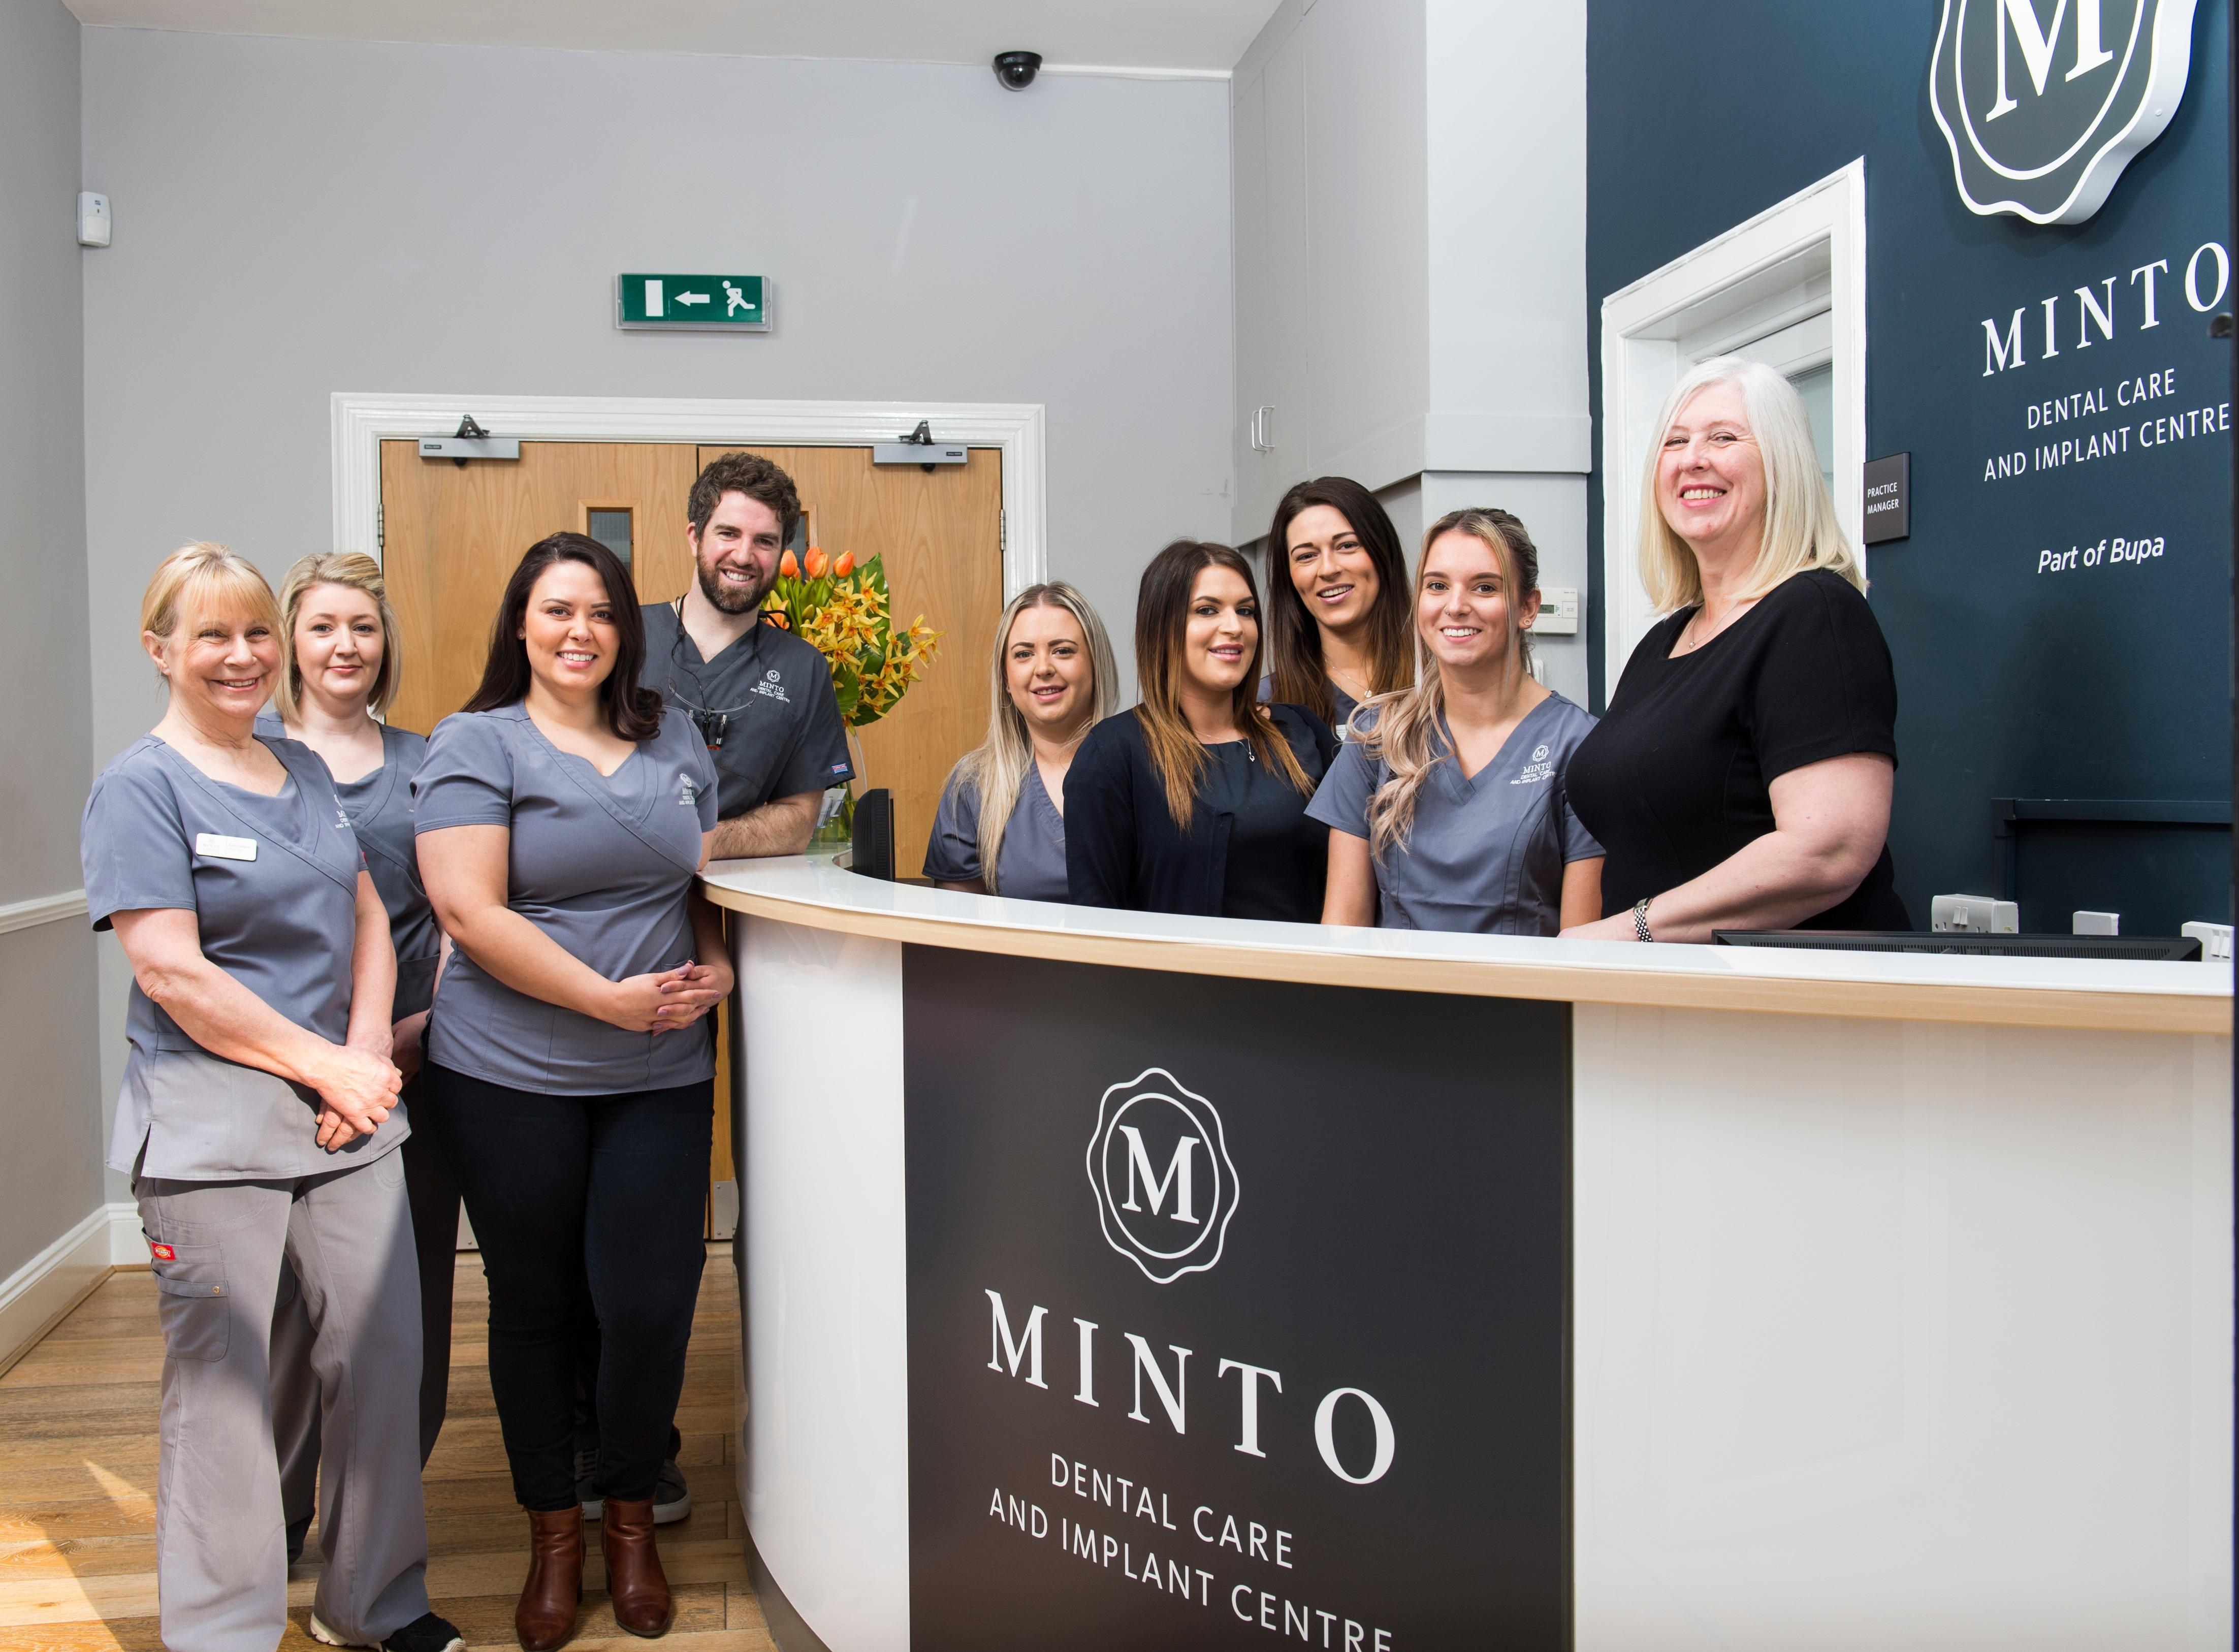 Minto Dental Care and Implant Centre